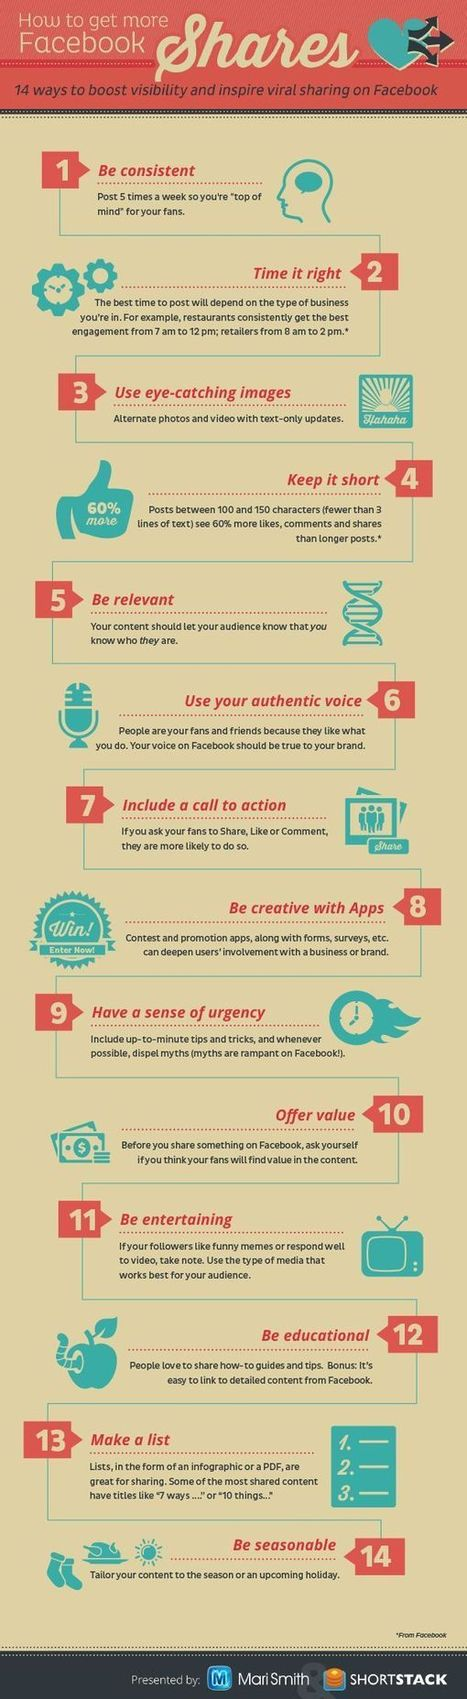 14 Ways To Get More Facebook Shares {Infographic} - Best Infographics | Digital-News on Scoop.it today | Scoop.it